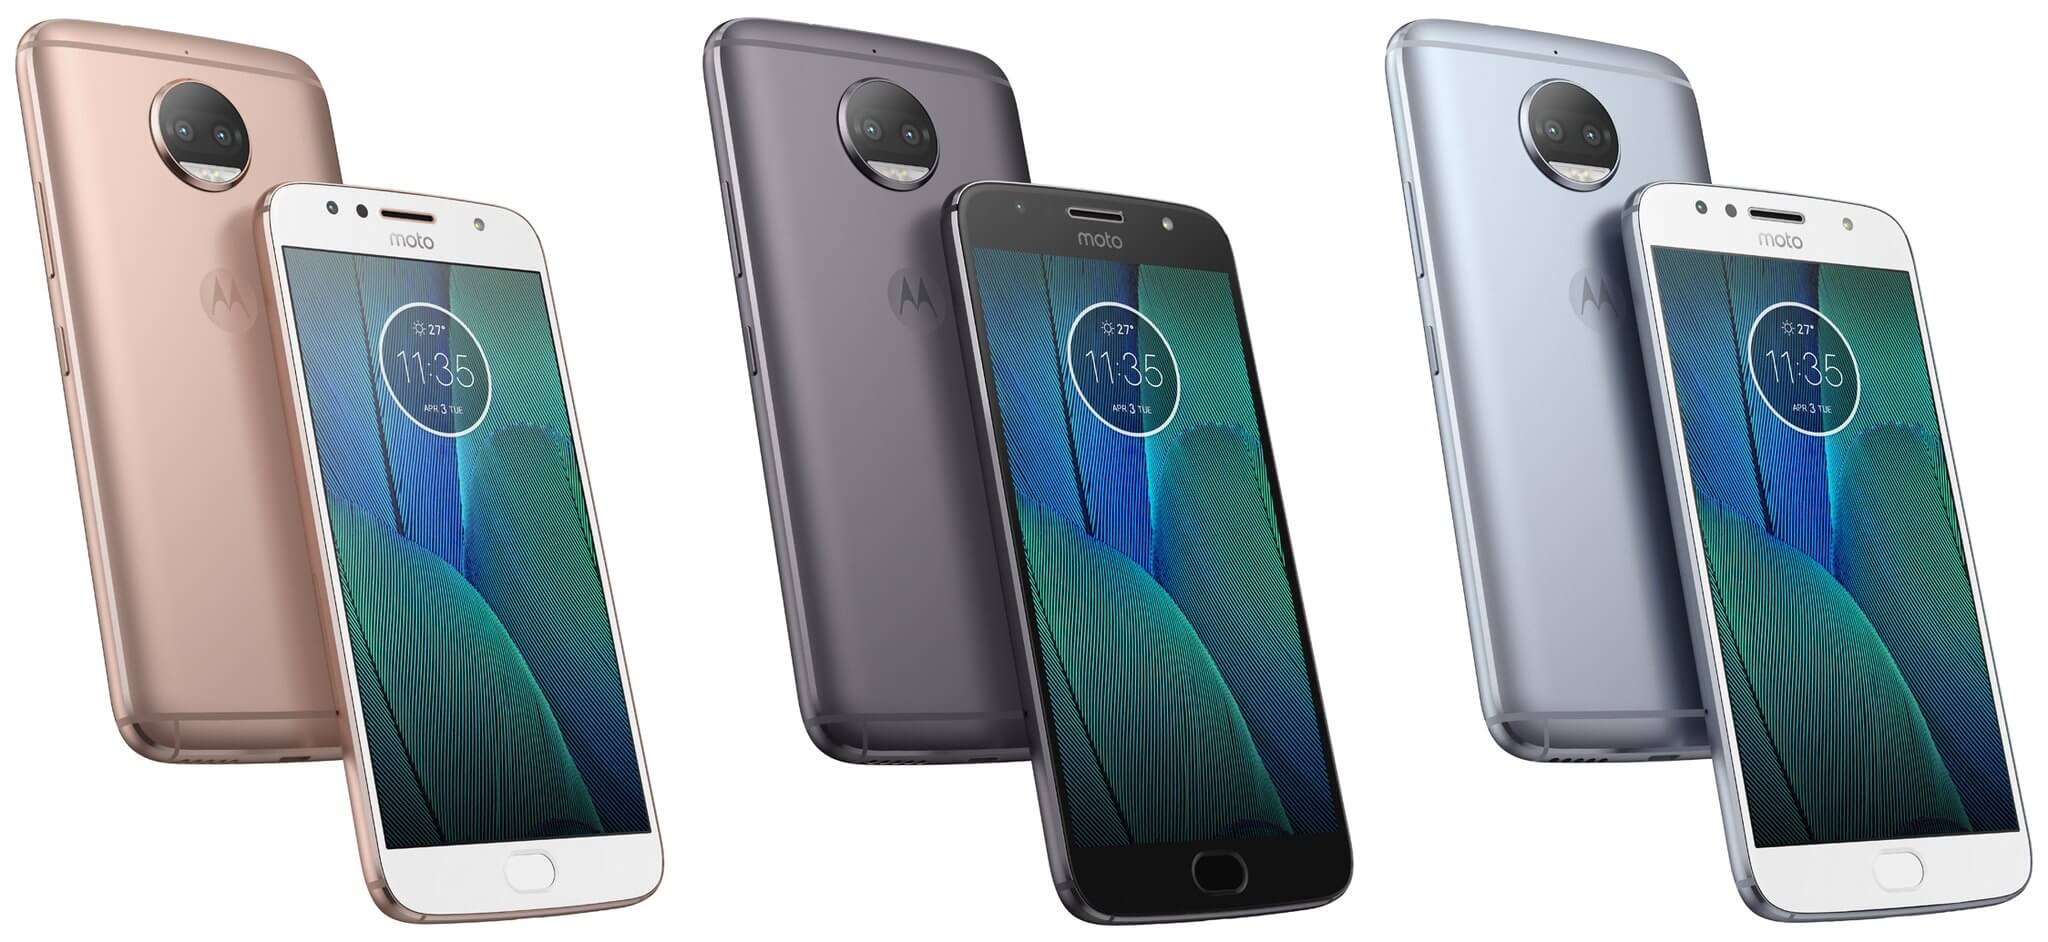 MOTO G5S Plus colours